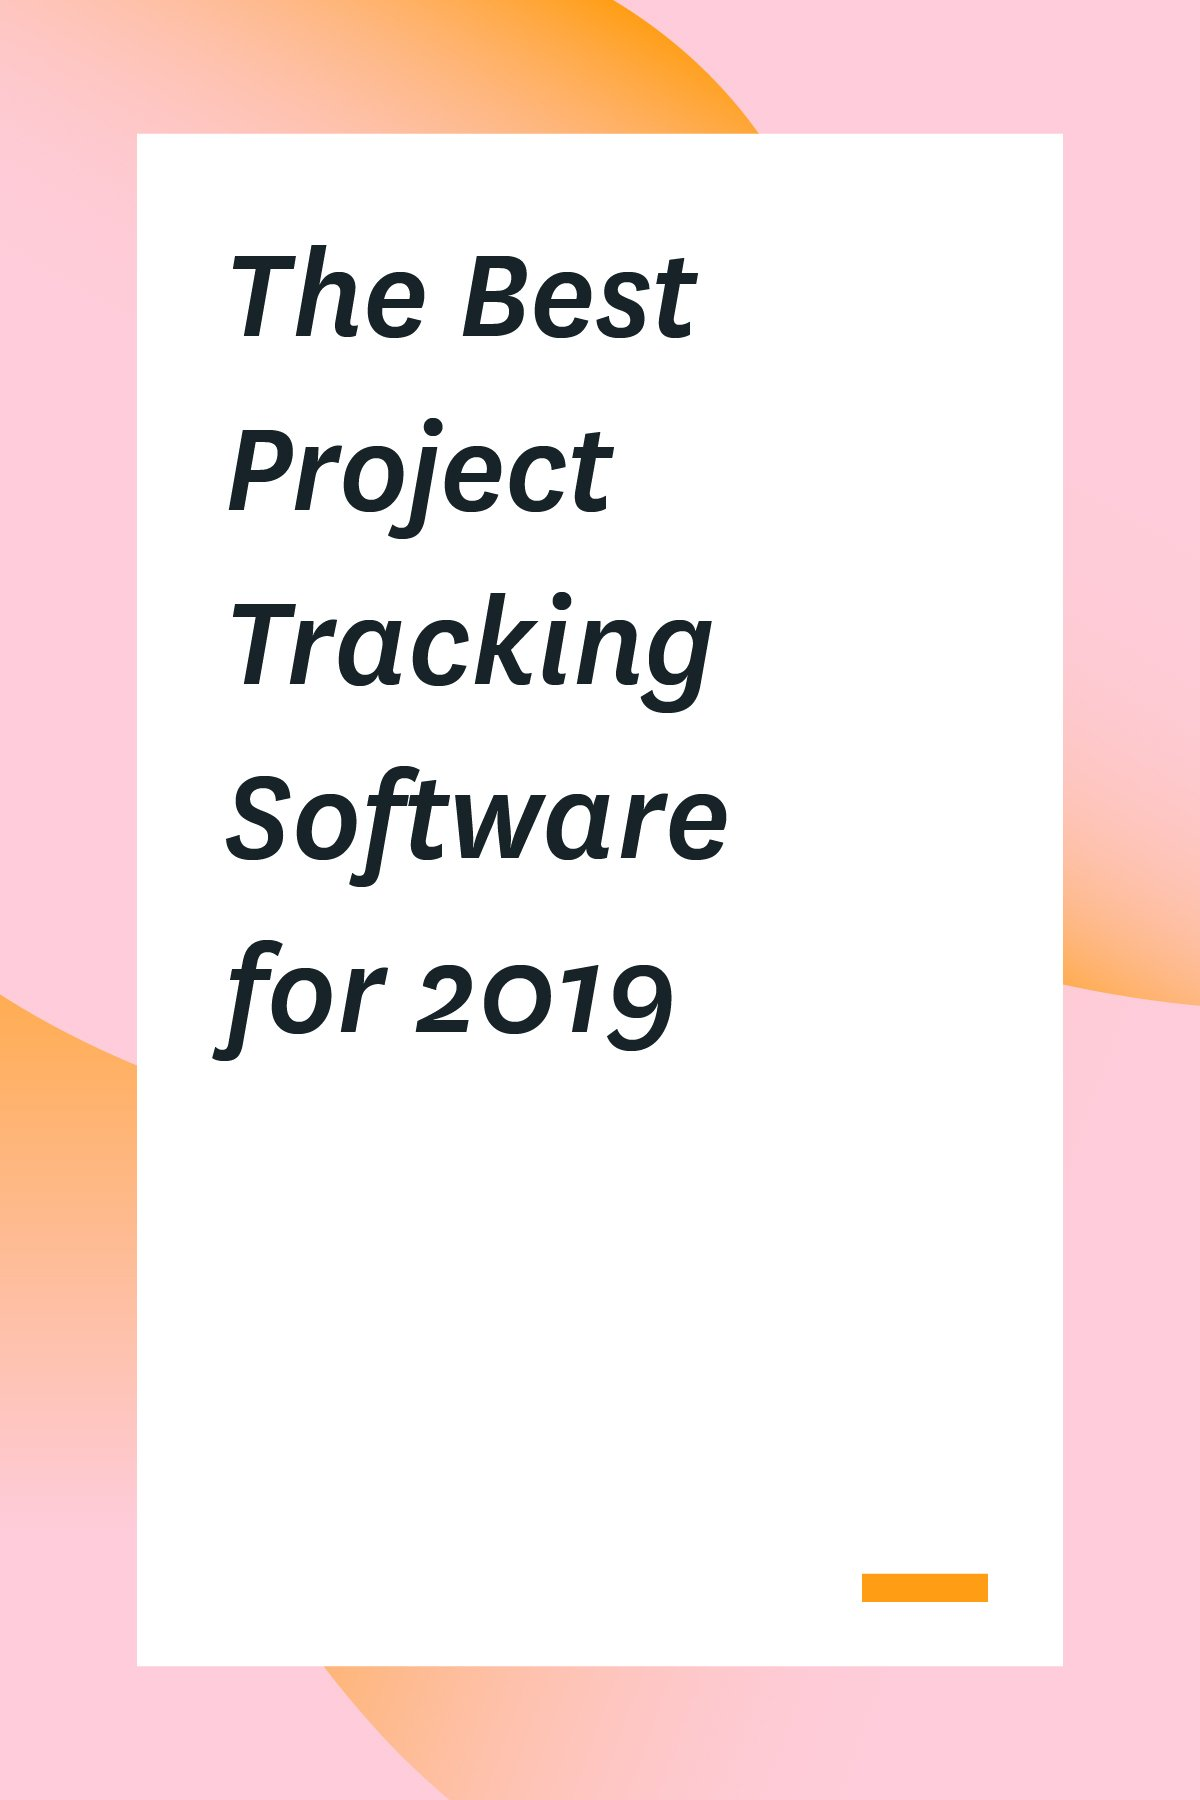 Here are the best project tracking software tools for 2019. These apps will help you manage your time, track your project's progress and manage your resources more effectively.